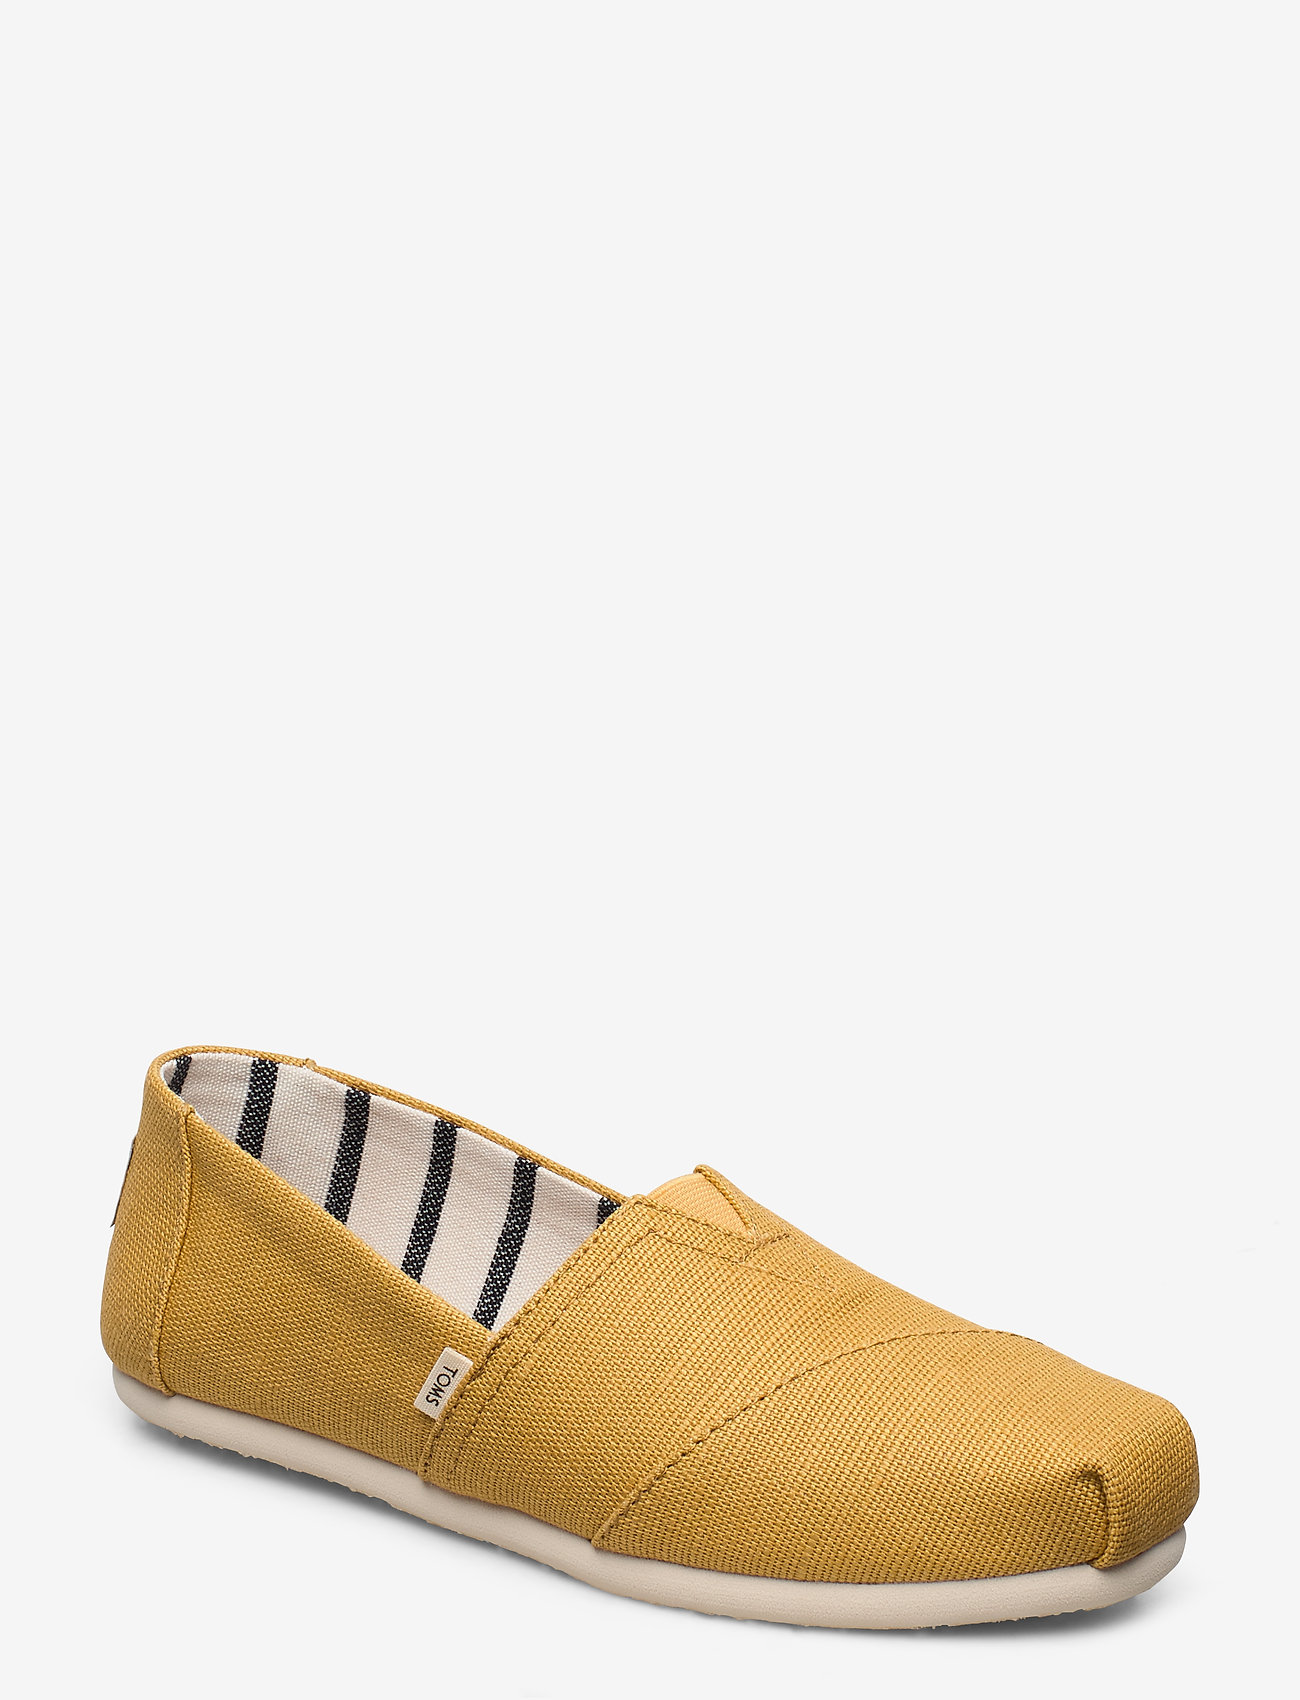 Toms Bright Gold Heritage Canvas - Sneakers